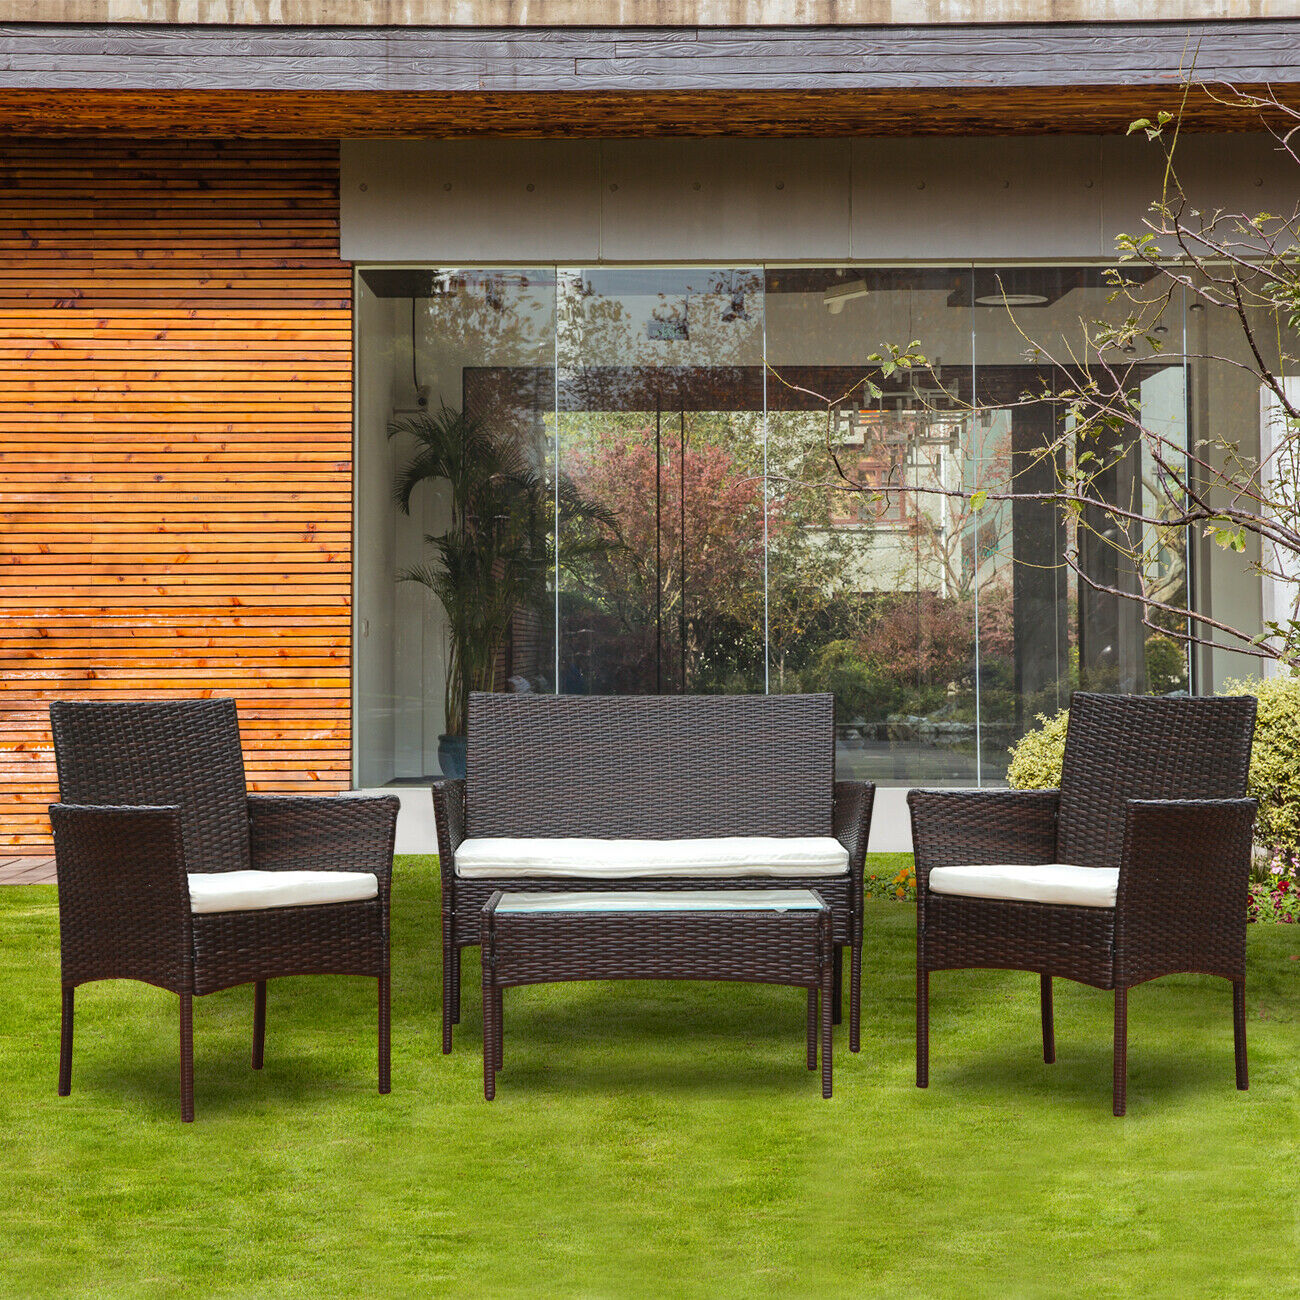 Garden Furniture - 4Pcs Rattan Garden Furniture Sofa Table Set Conservatory Patio Outdoor Brown New